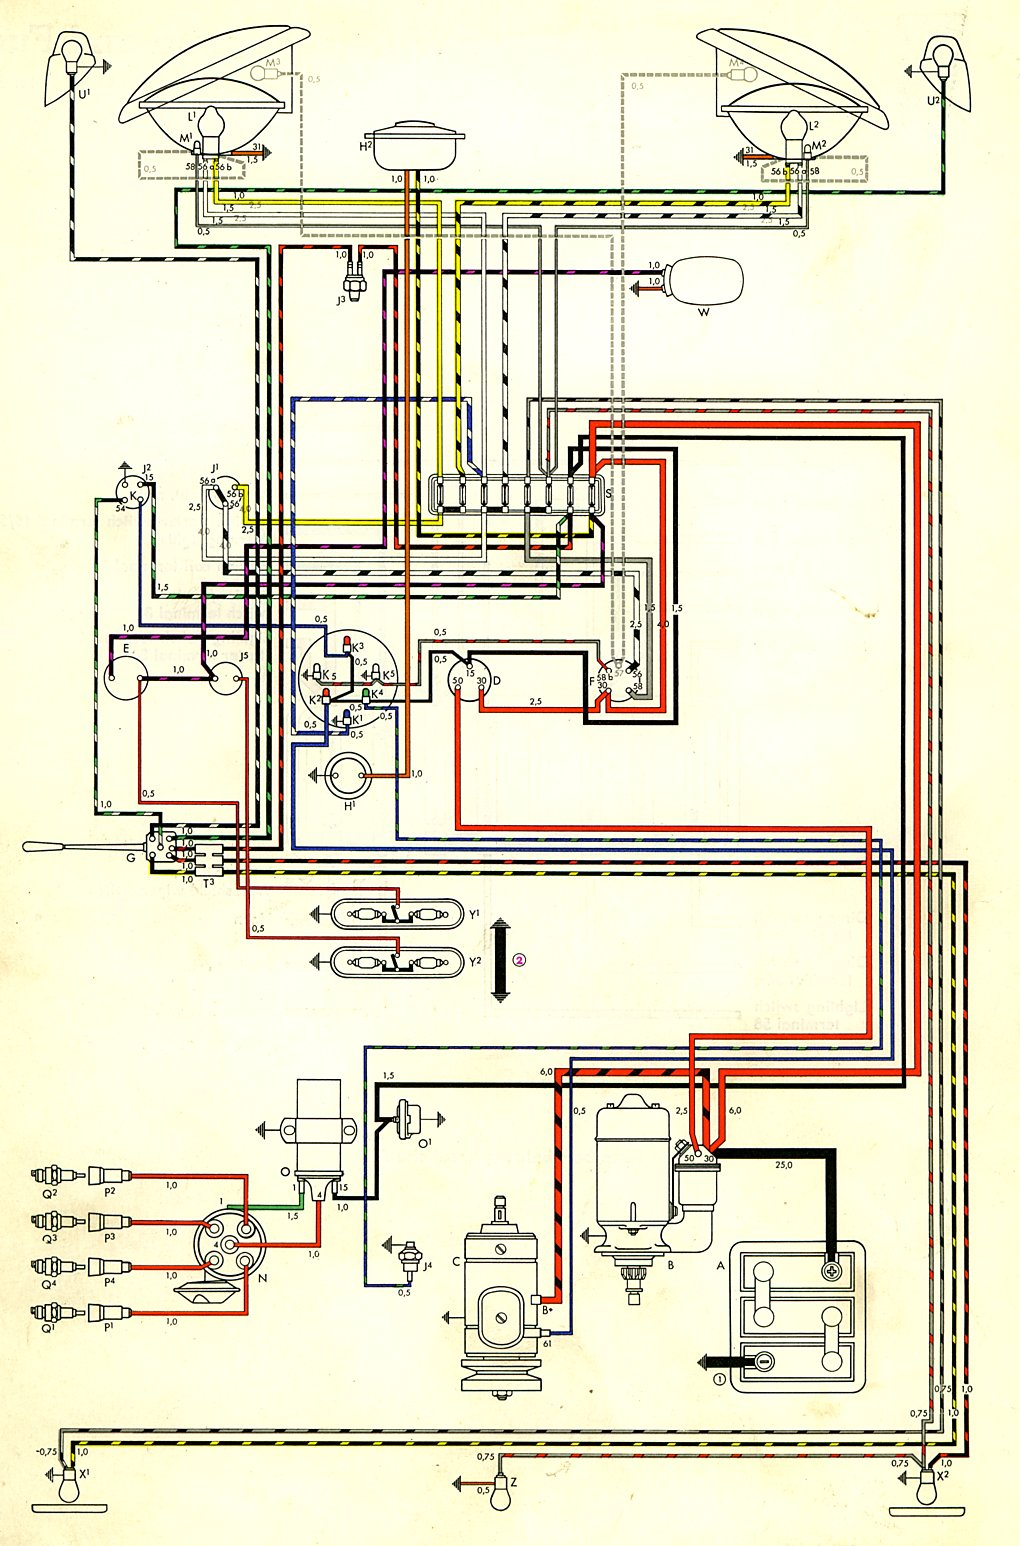 1969 chevy truck ignition wiring diagram 1971 chevy truck [ 1020 x 1546 Pixel ]